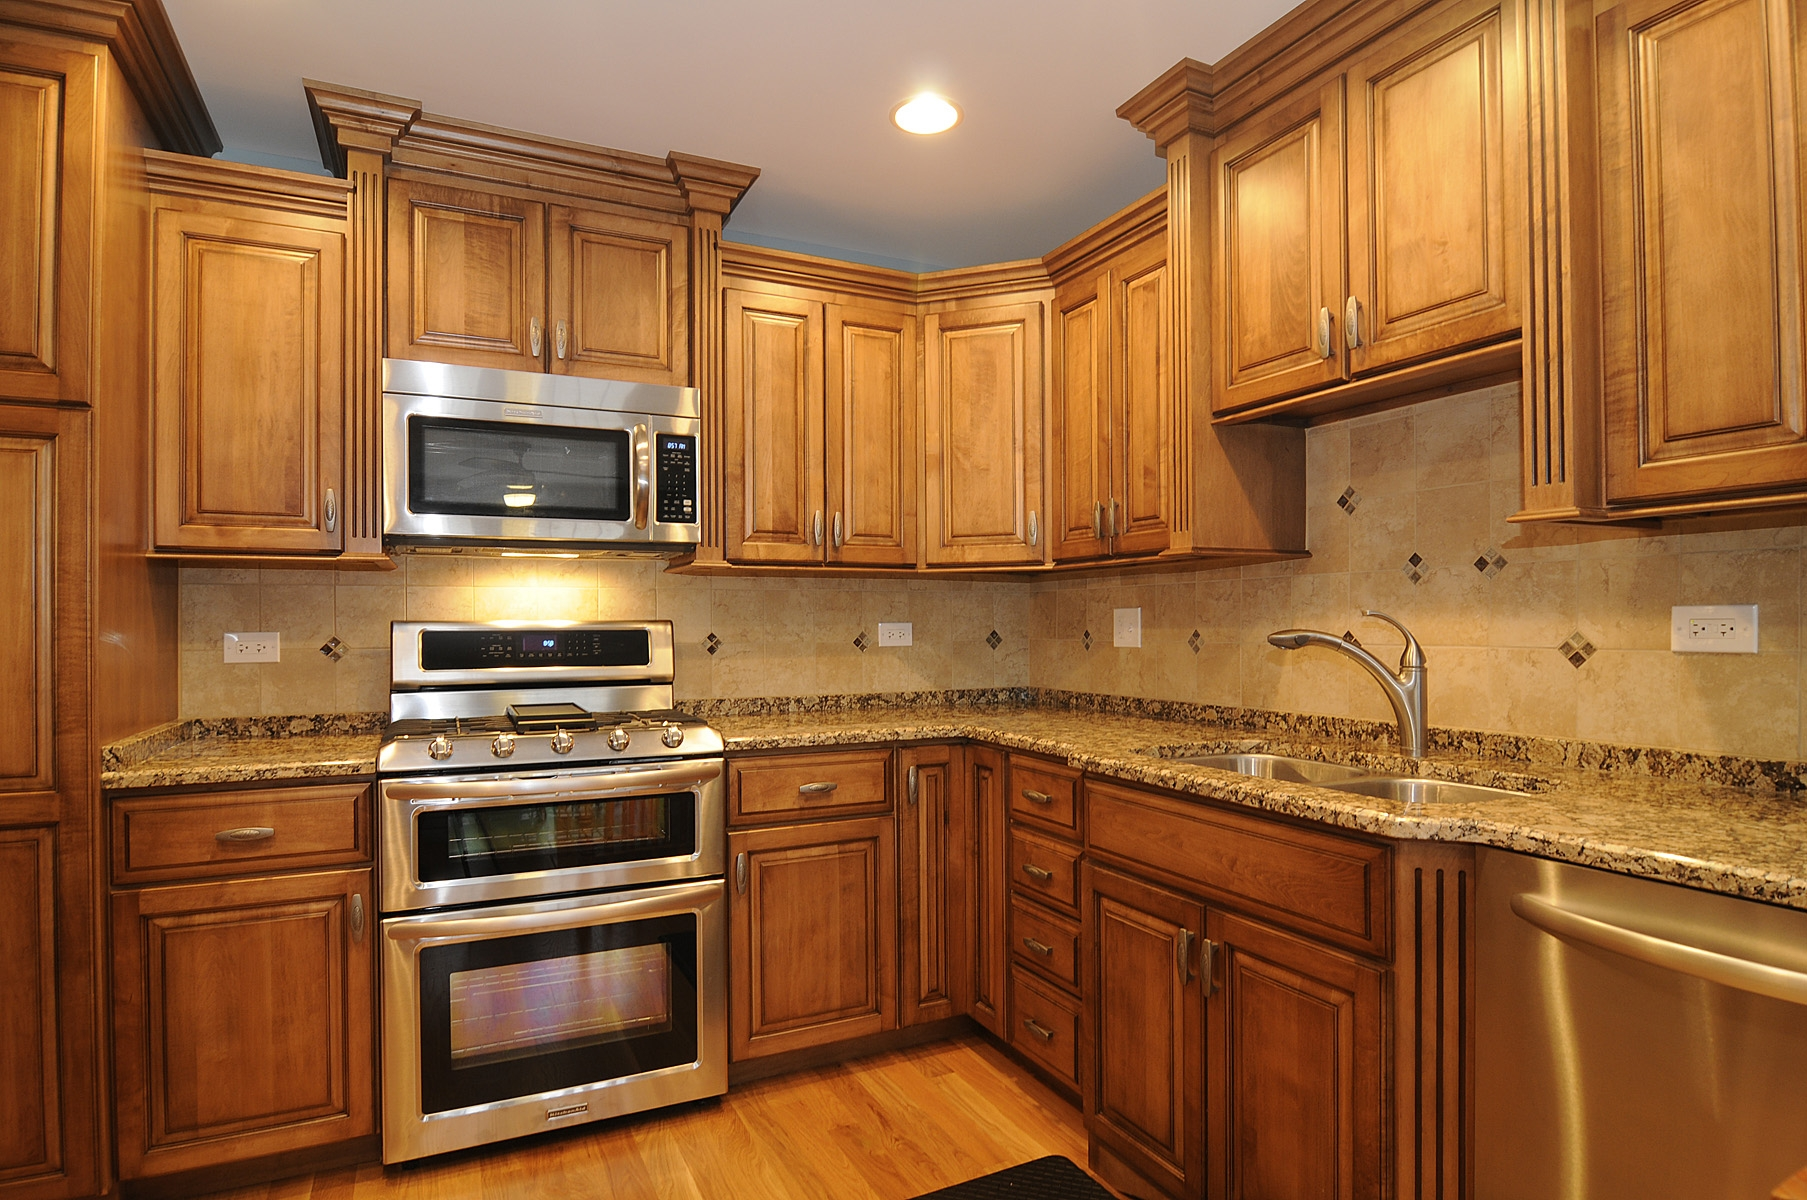 amish kitchen cabinets chicago moving island cabinetry installation